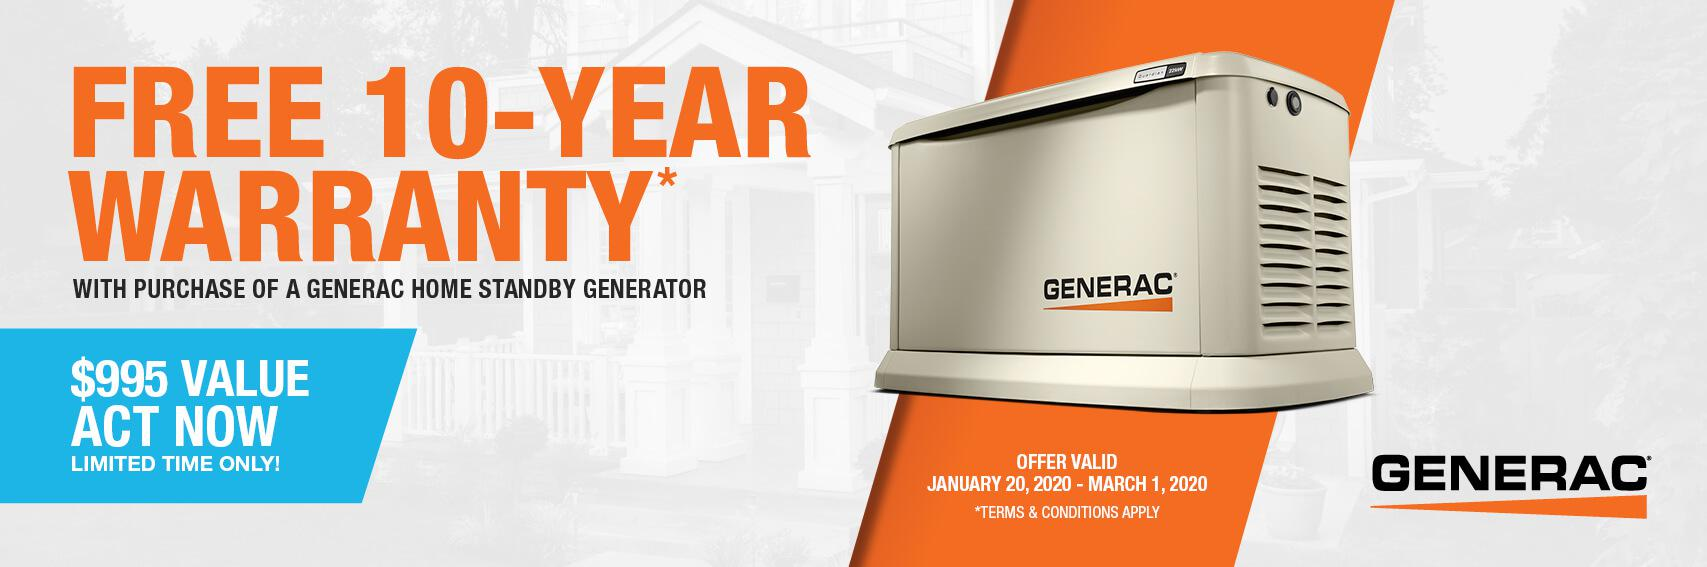 Homestandby Generator Deal | Warranty Offer | Generac Dealer | Newaygo, MI